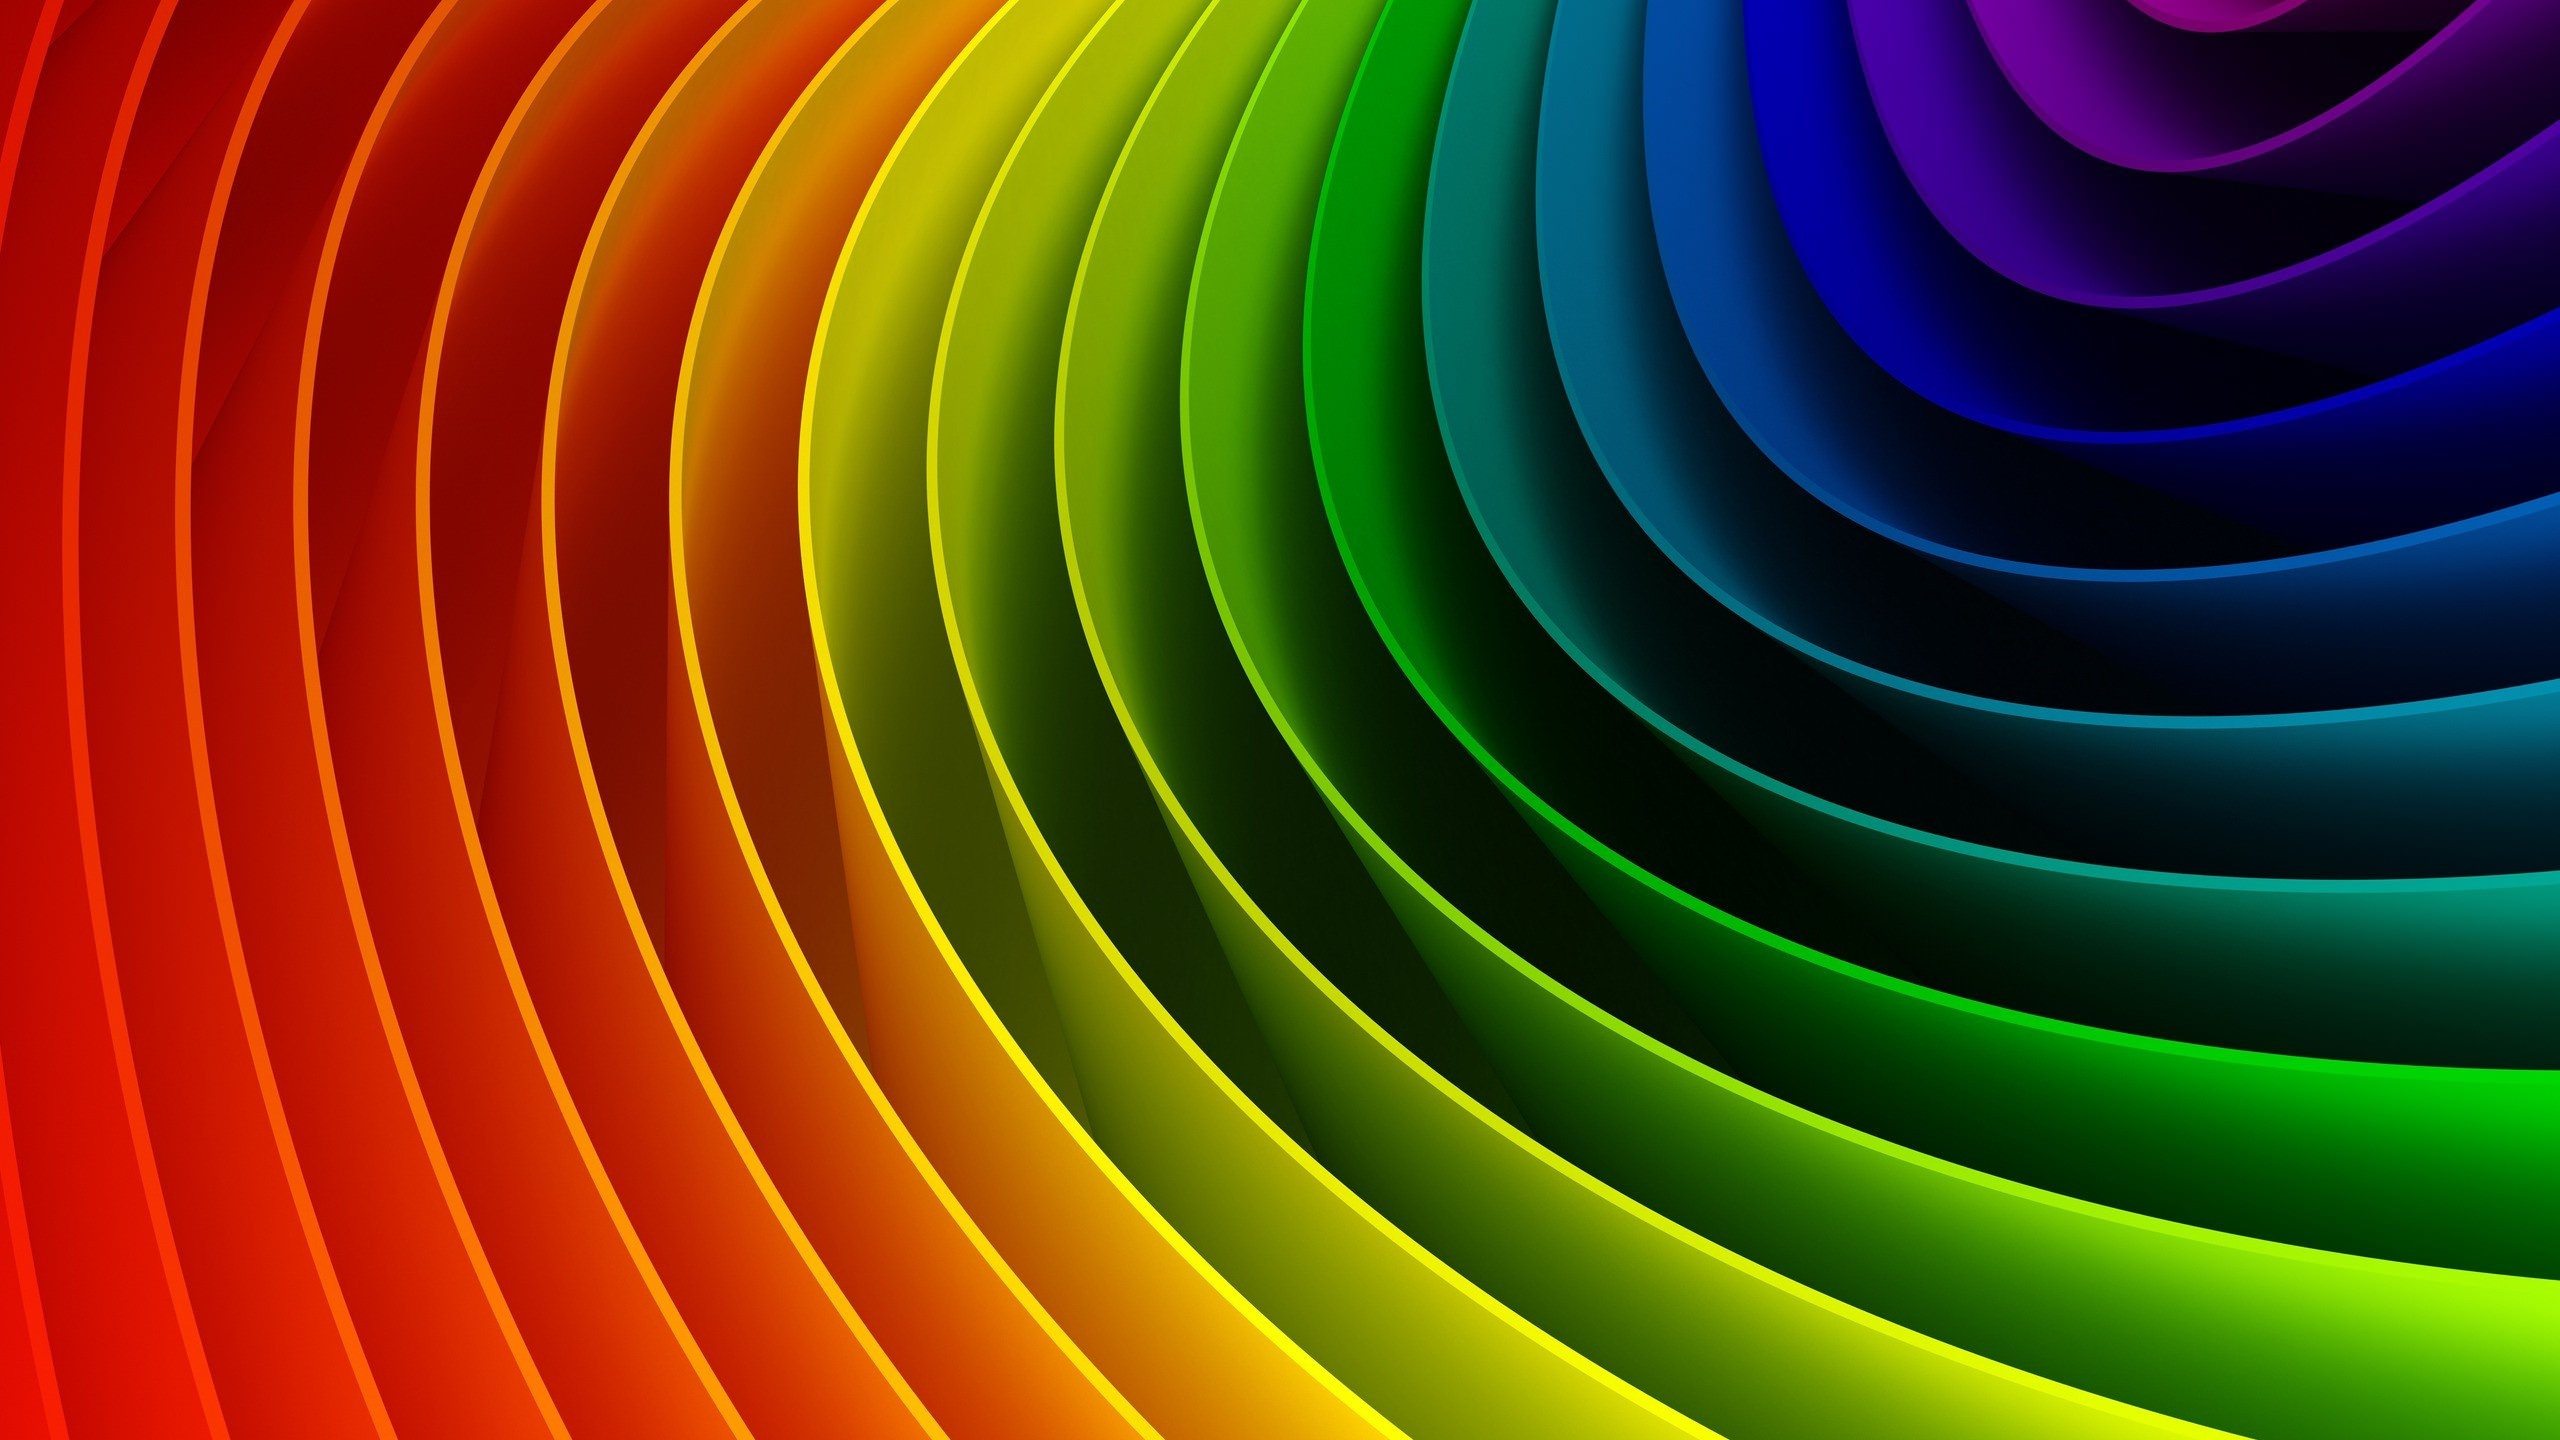 Colorful Curved Rainbow Pattern